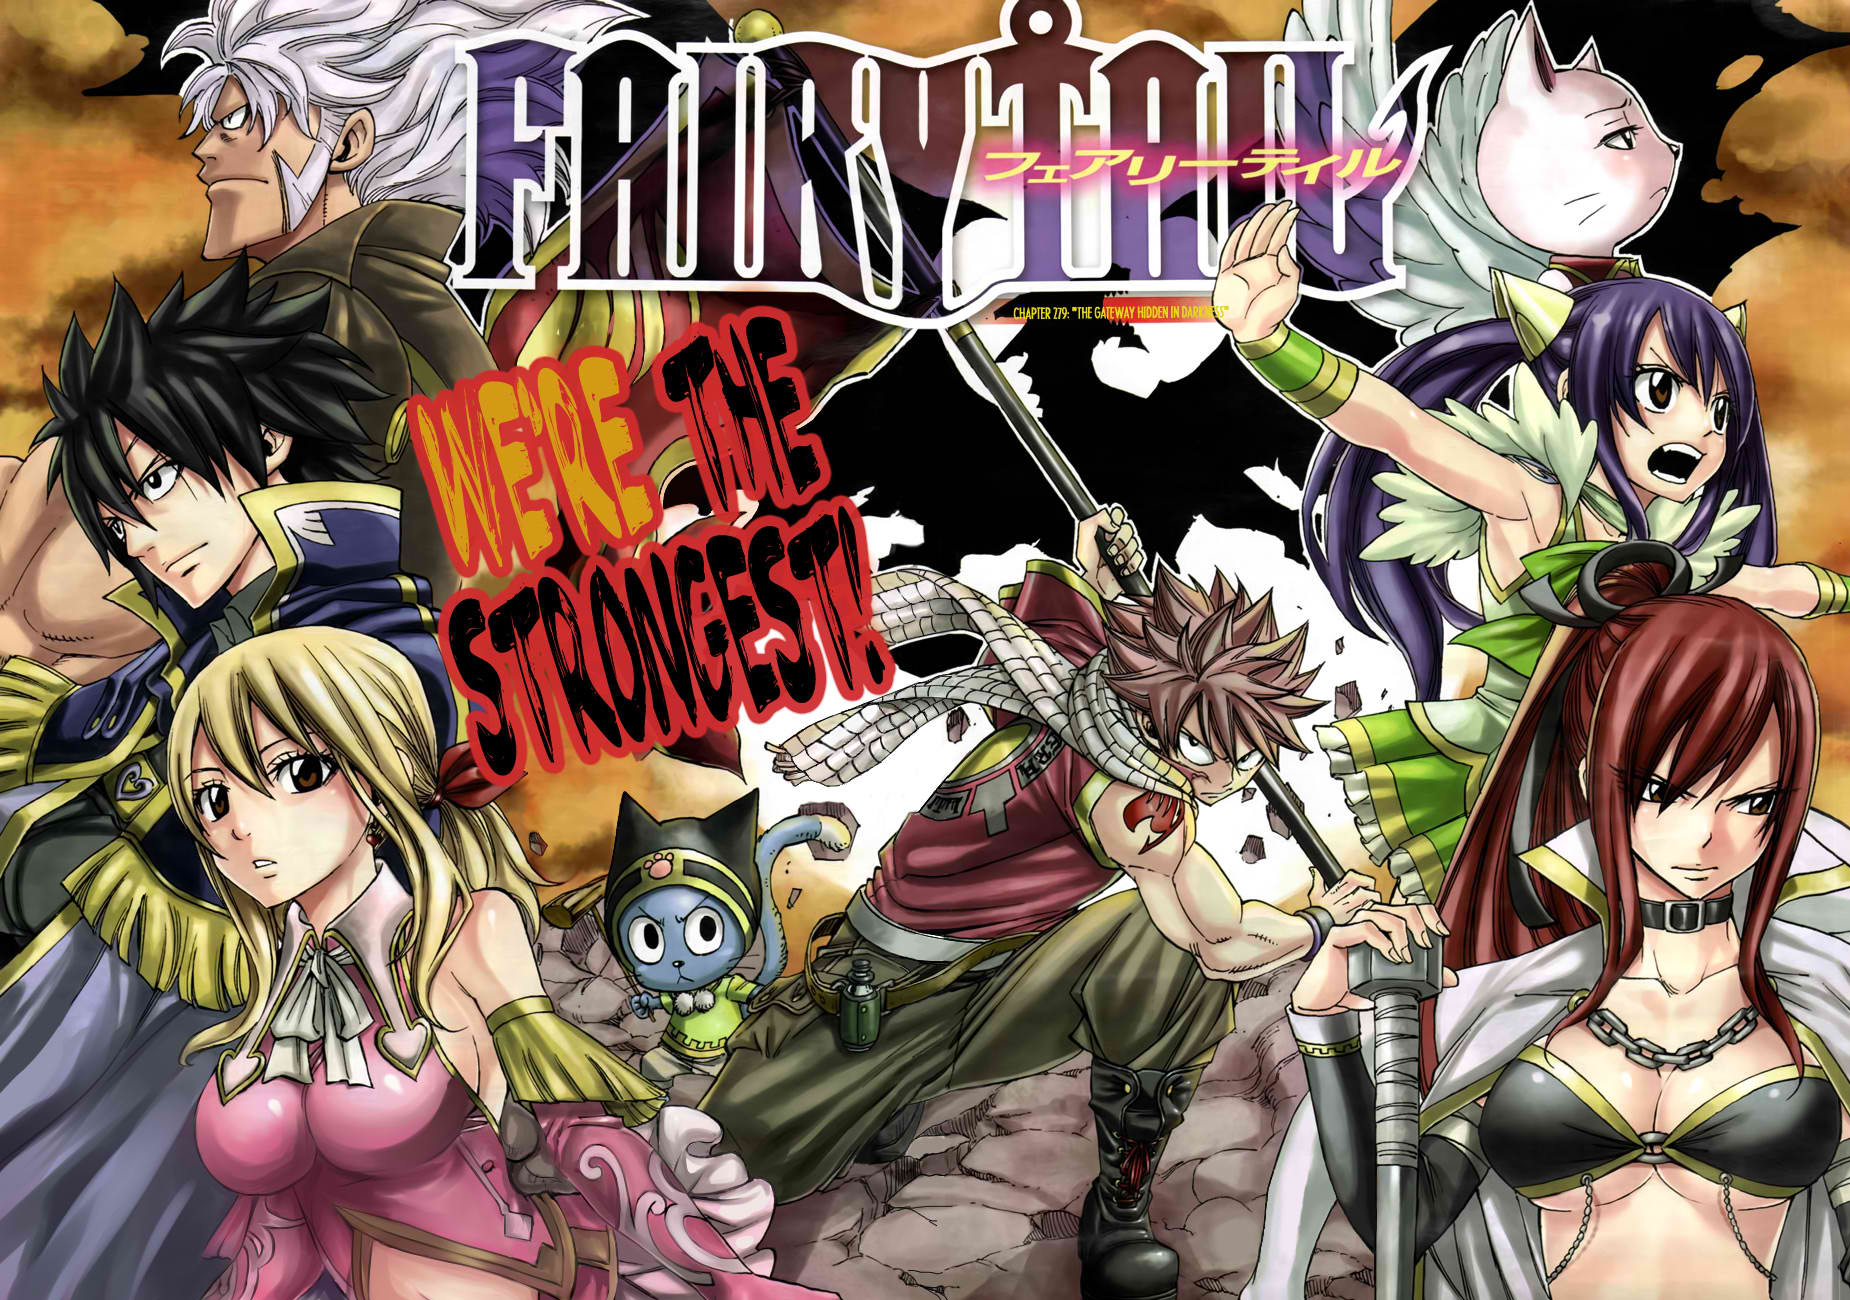 Fairy Tail Chapter 279 - colour spread